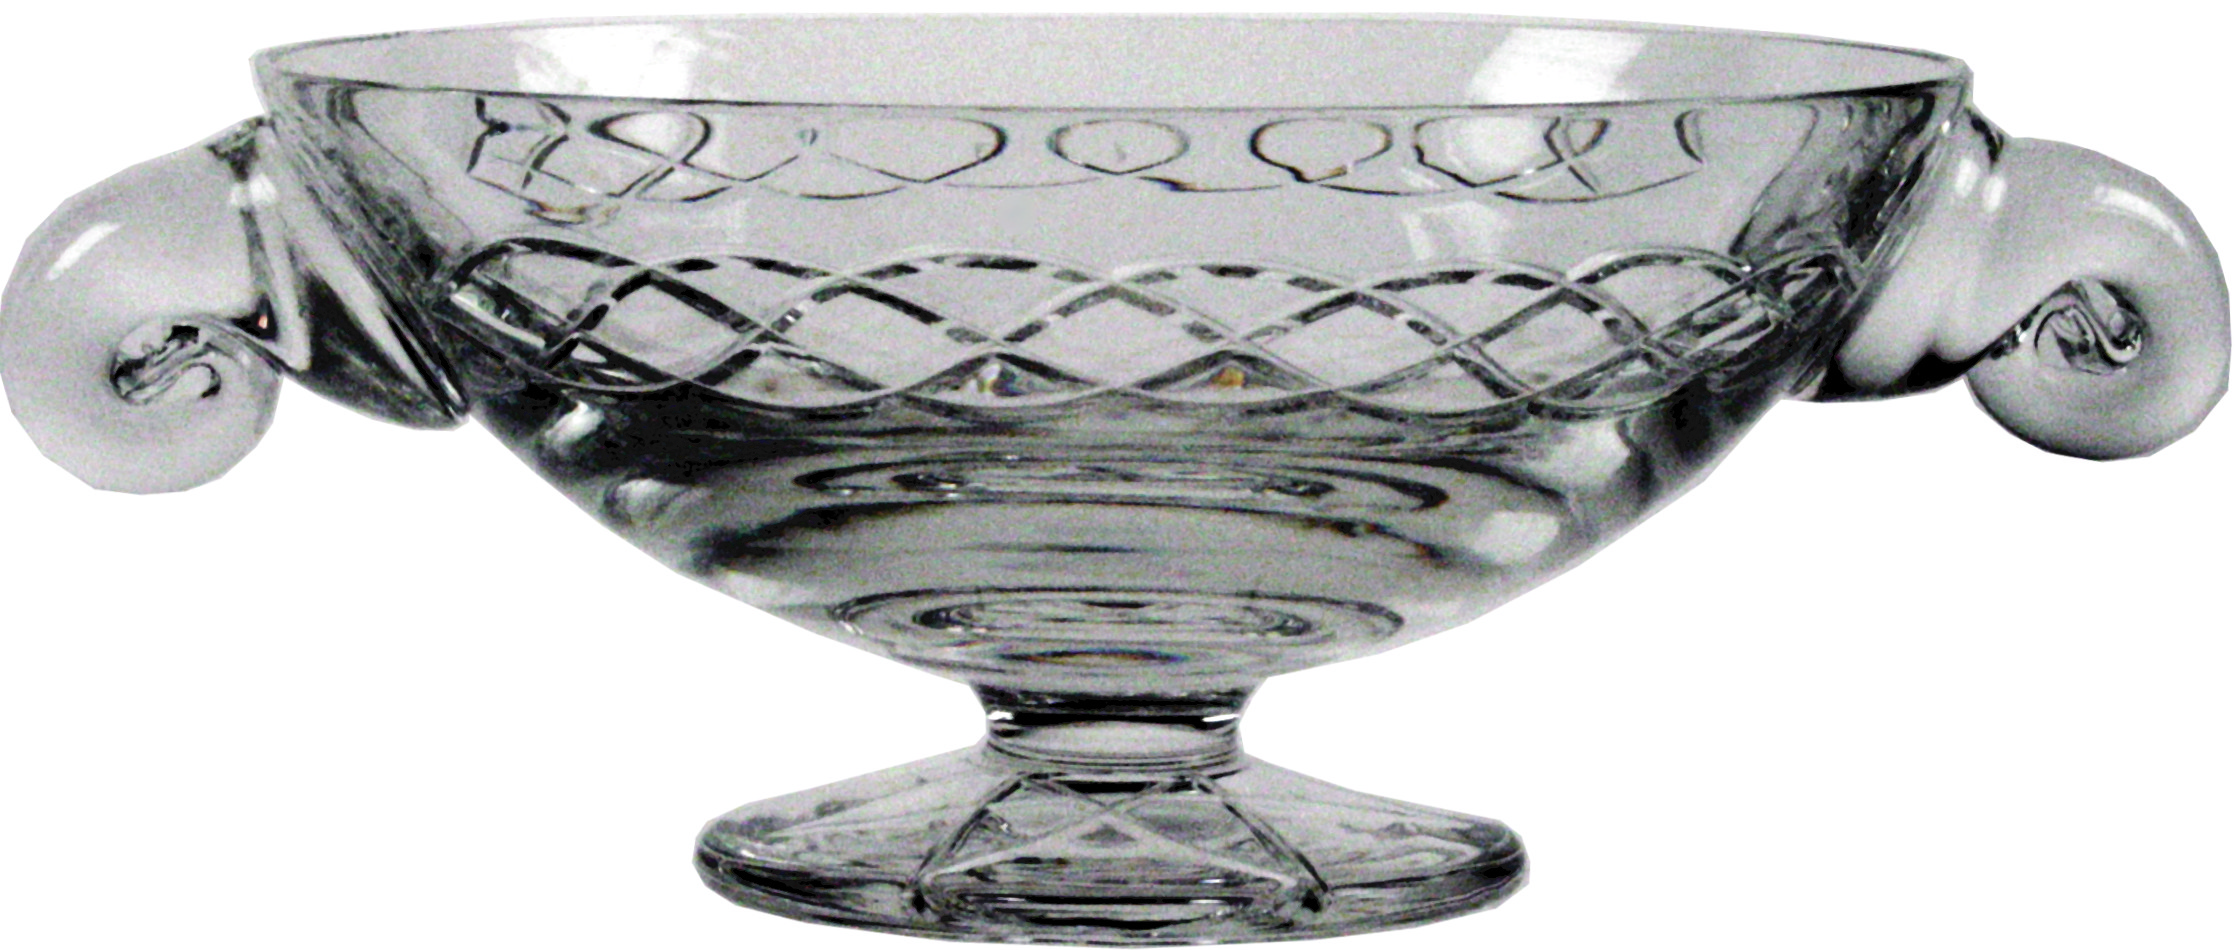 "Crystal Glass Quaich Bowl with Celtic design 12cm (4.75"")"